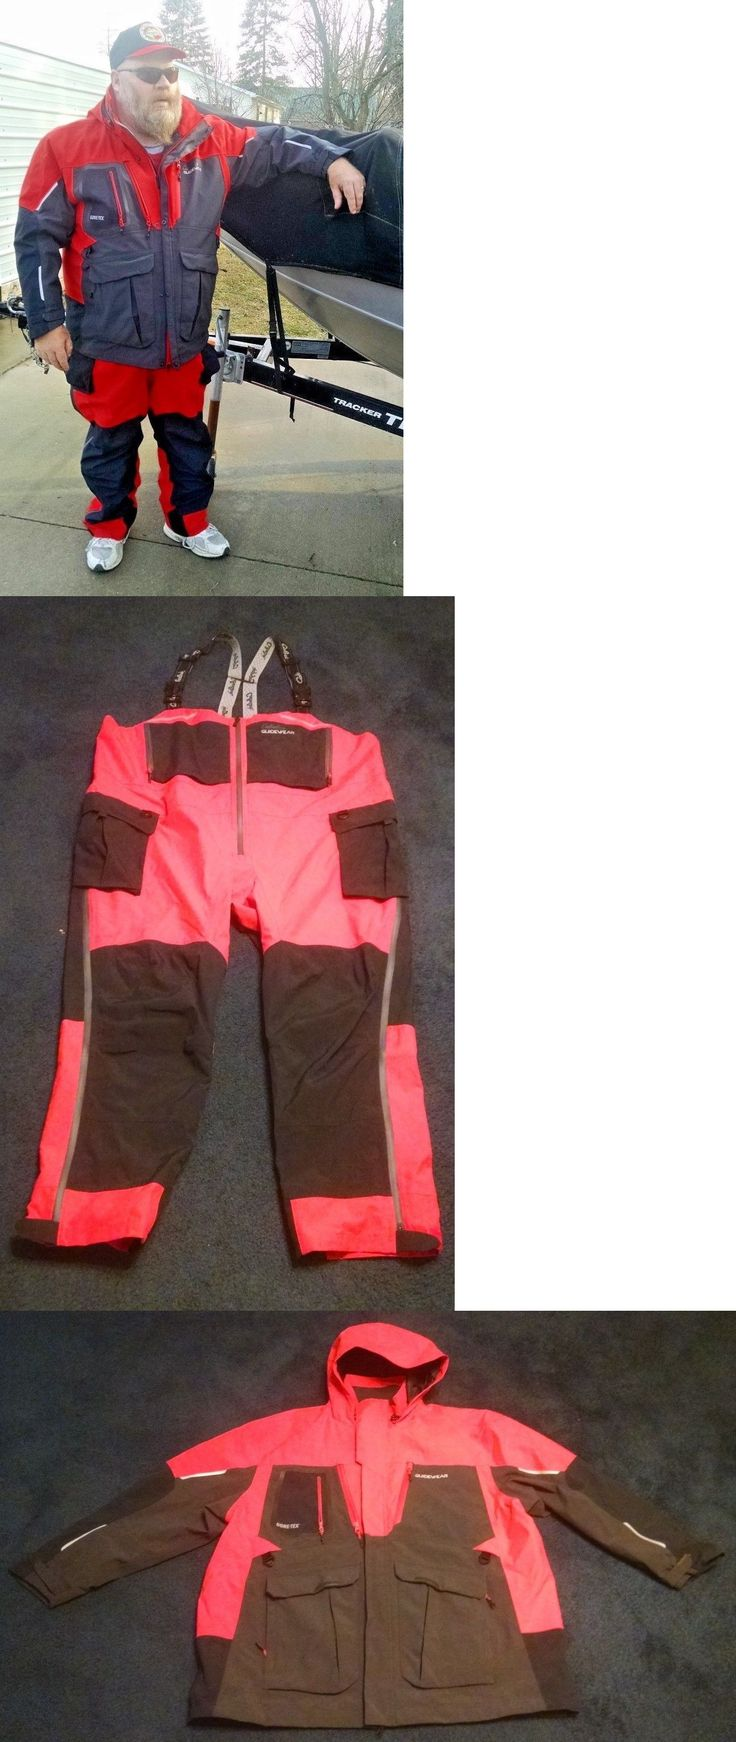 Jacket and Pants Sets 179981: Gore-Tex Parka And Bibs By Cabelas Red / Black Size 3Xl New With Tags BUY IT NOW ONLY: $550.0